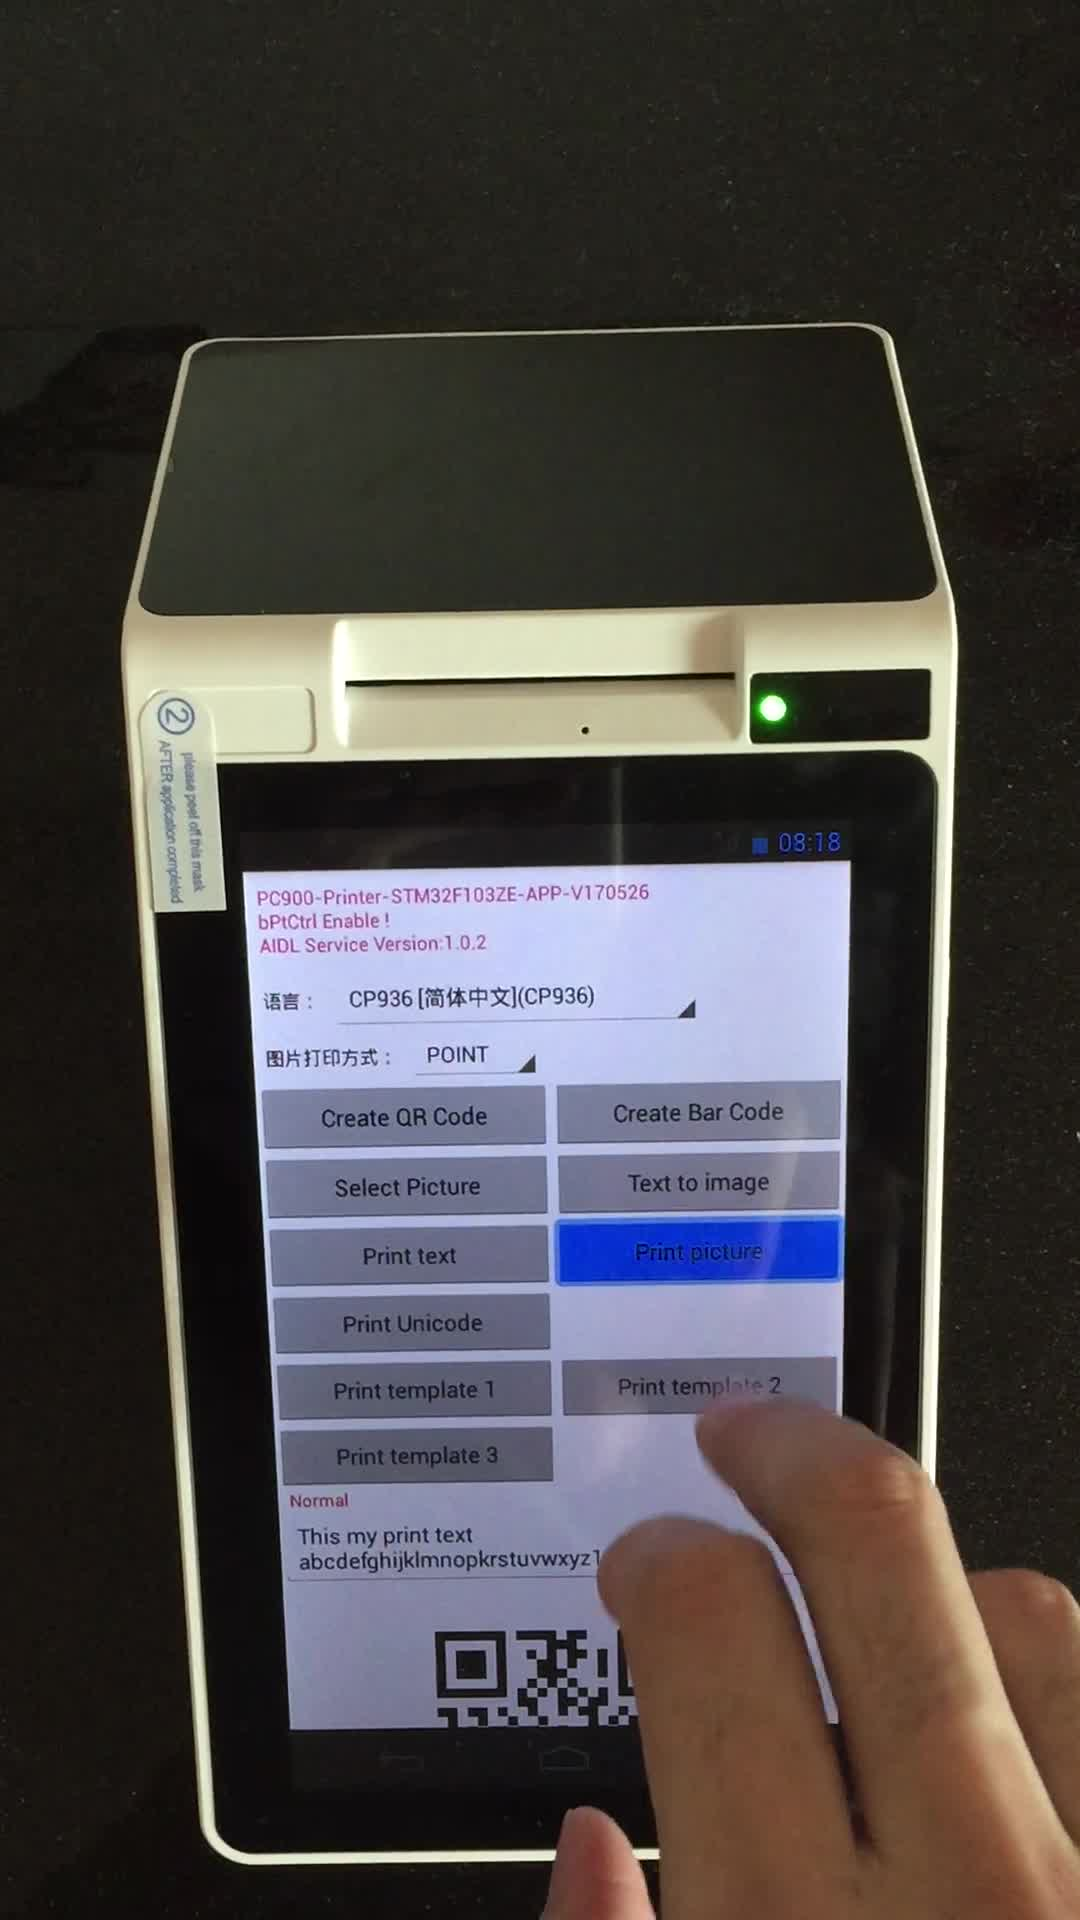 Movotek QR Code Scanner Android Handheld POS Terminal for Mobile Payments